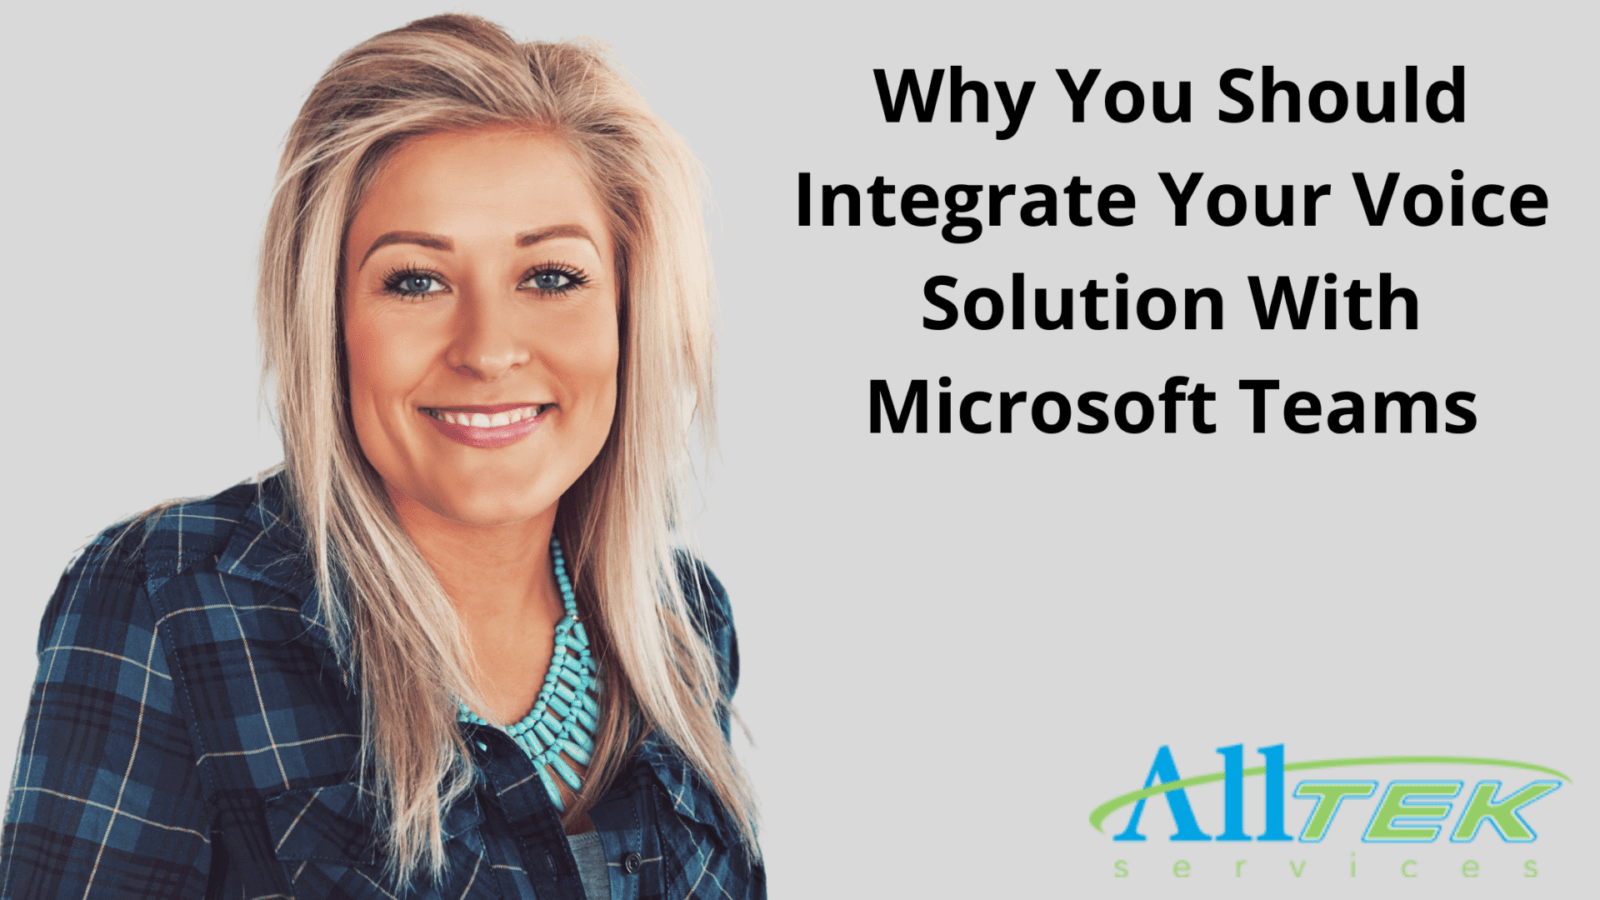 Why You Should Integrate Your Voice Solution With Microsoft Teams